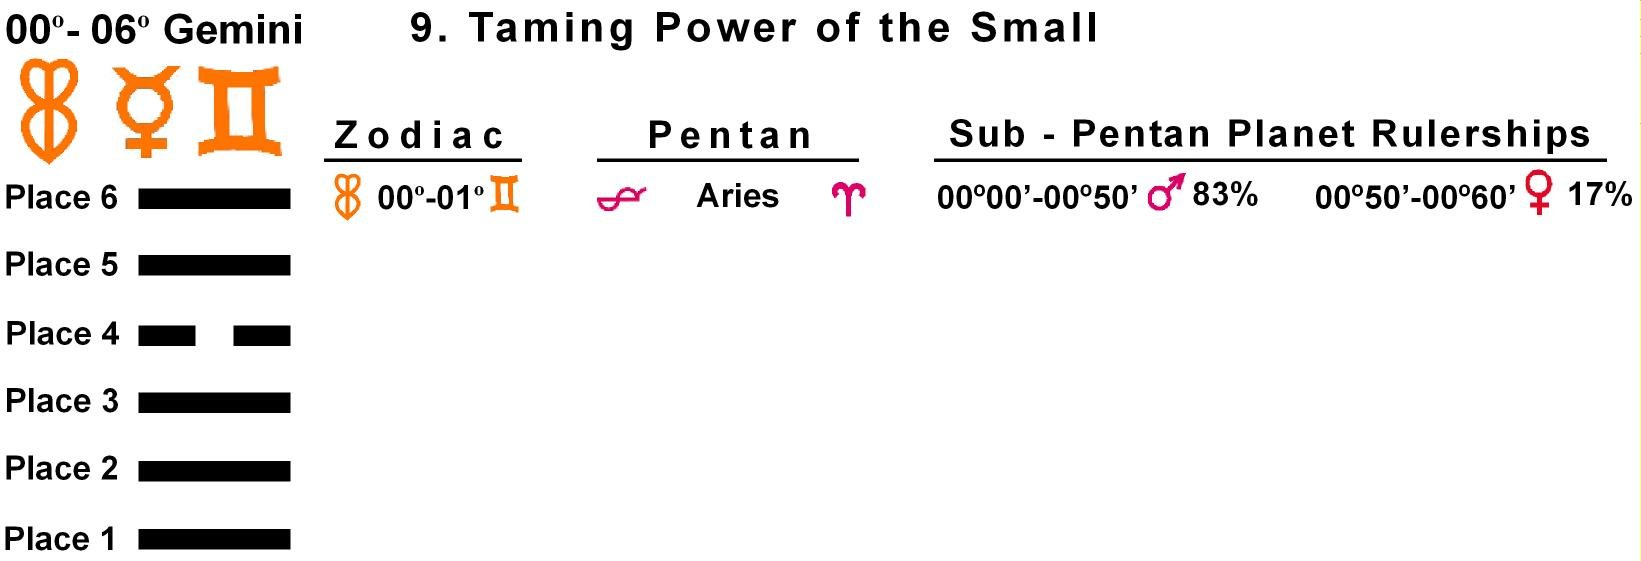 Pent-lines-03GE 00-01 Hx-09 Taming Power Of The Small